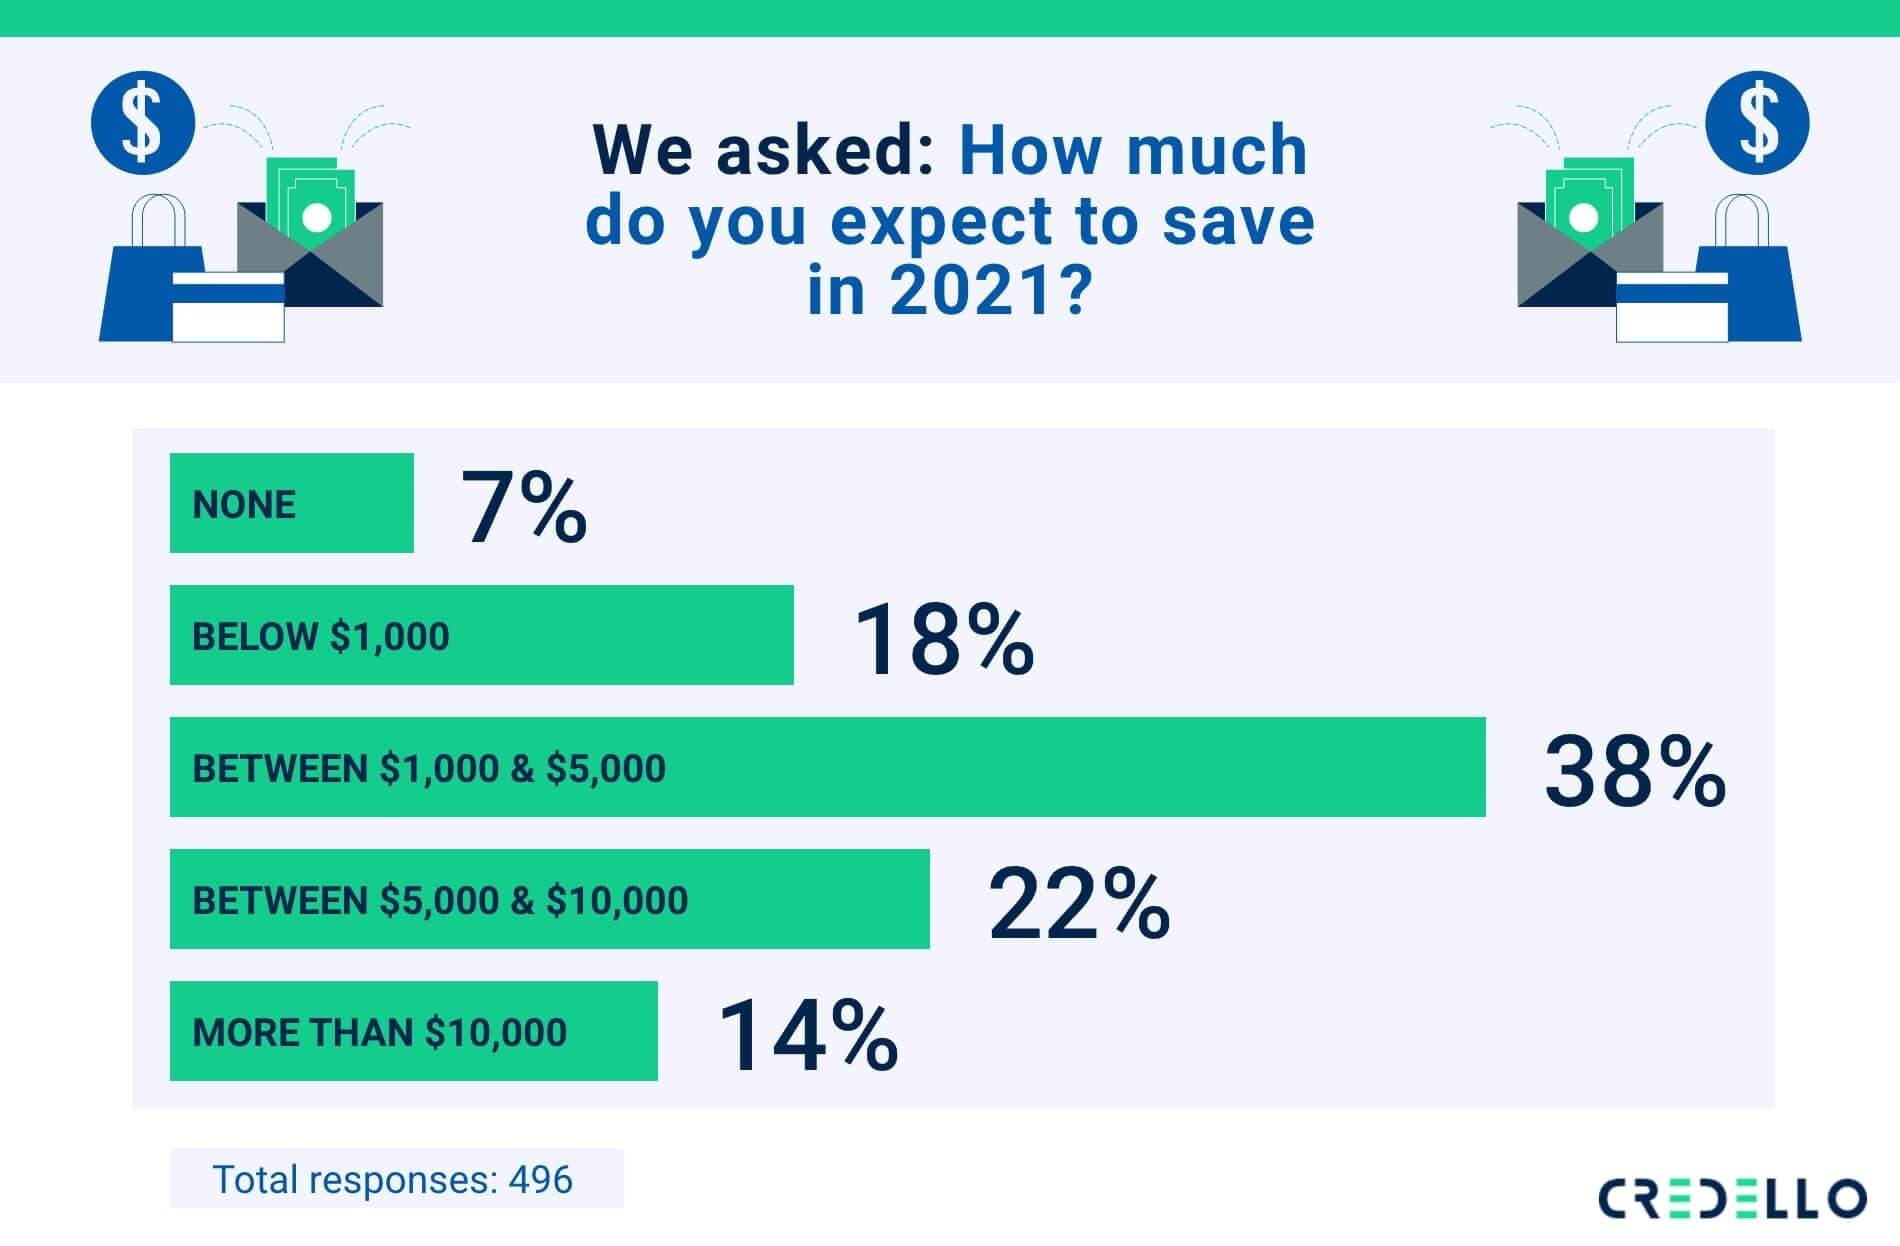 biggest financial resolution in 2020 was to save more